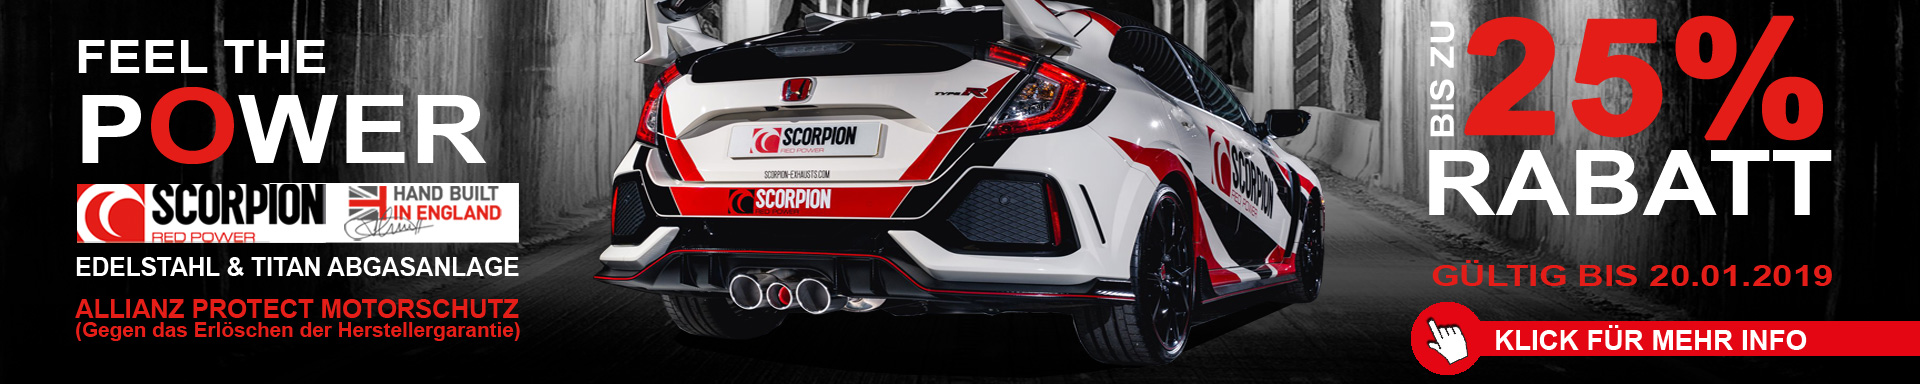 UP TO 25% DISCOUNT ON ALL SCORPION EXHAUST SYSTEMS